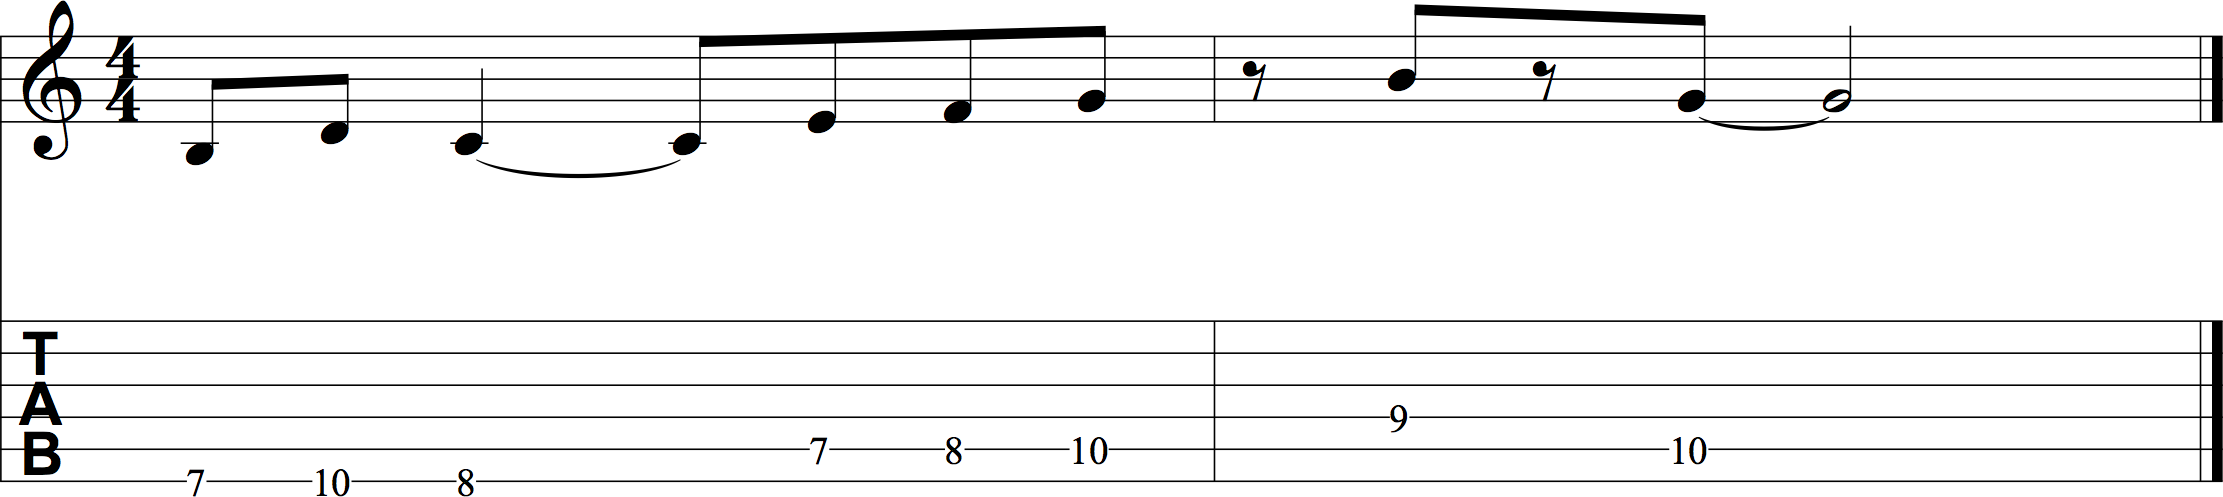 An example of the fret hand fingersnap technique.